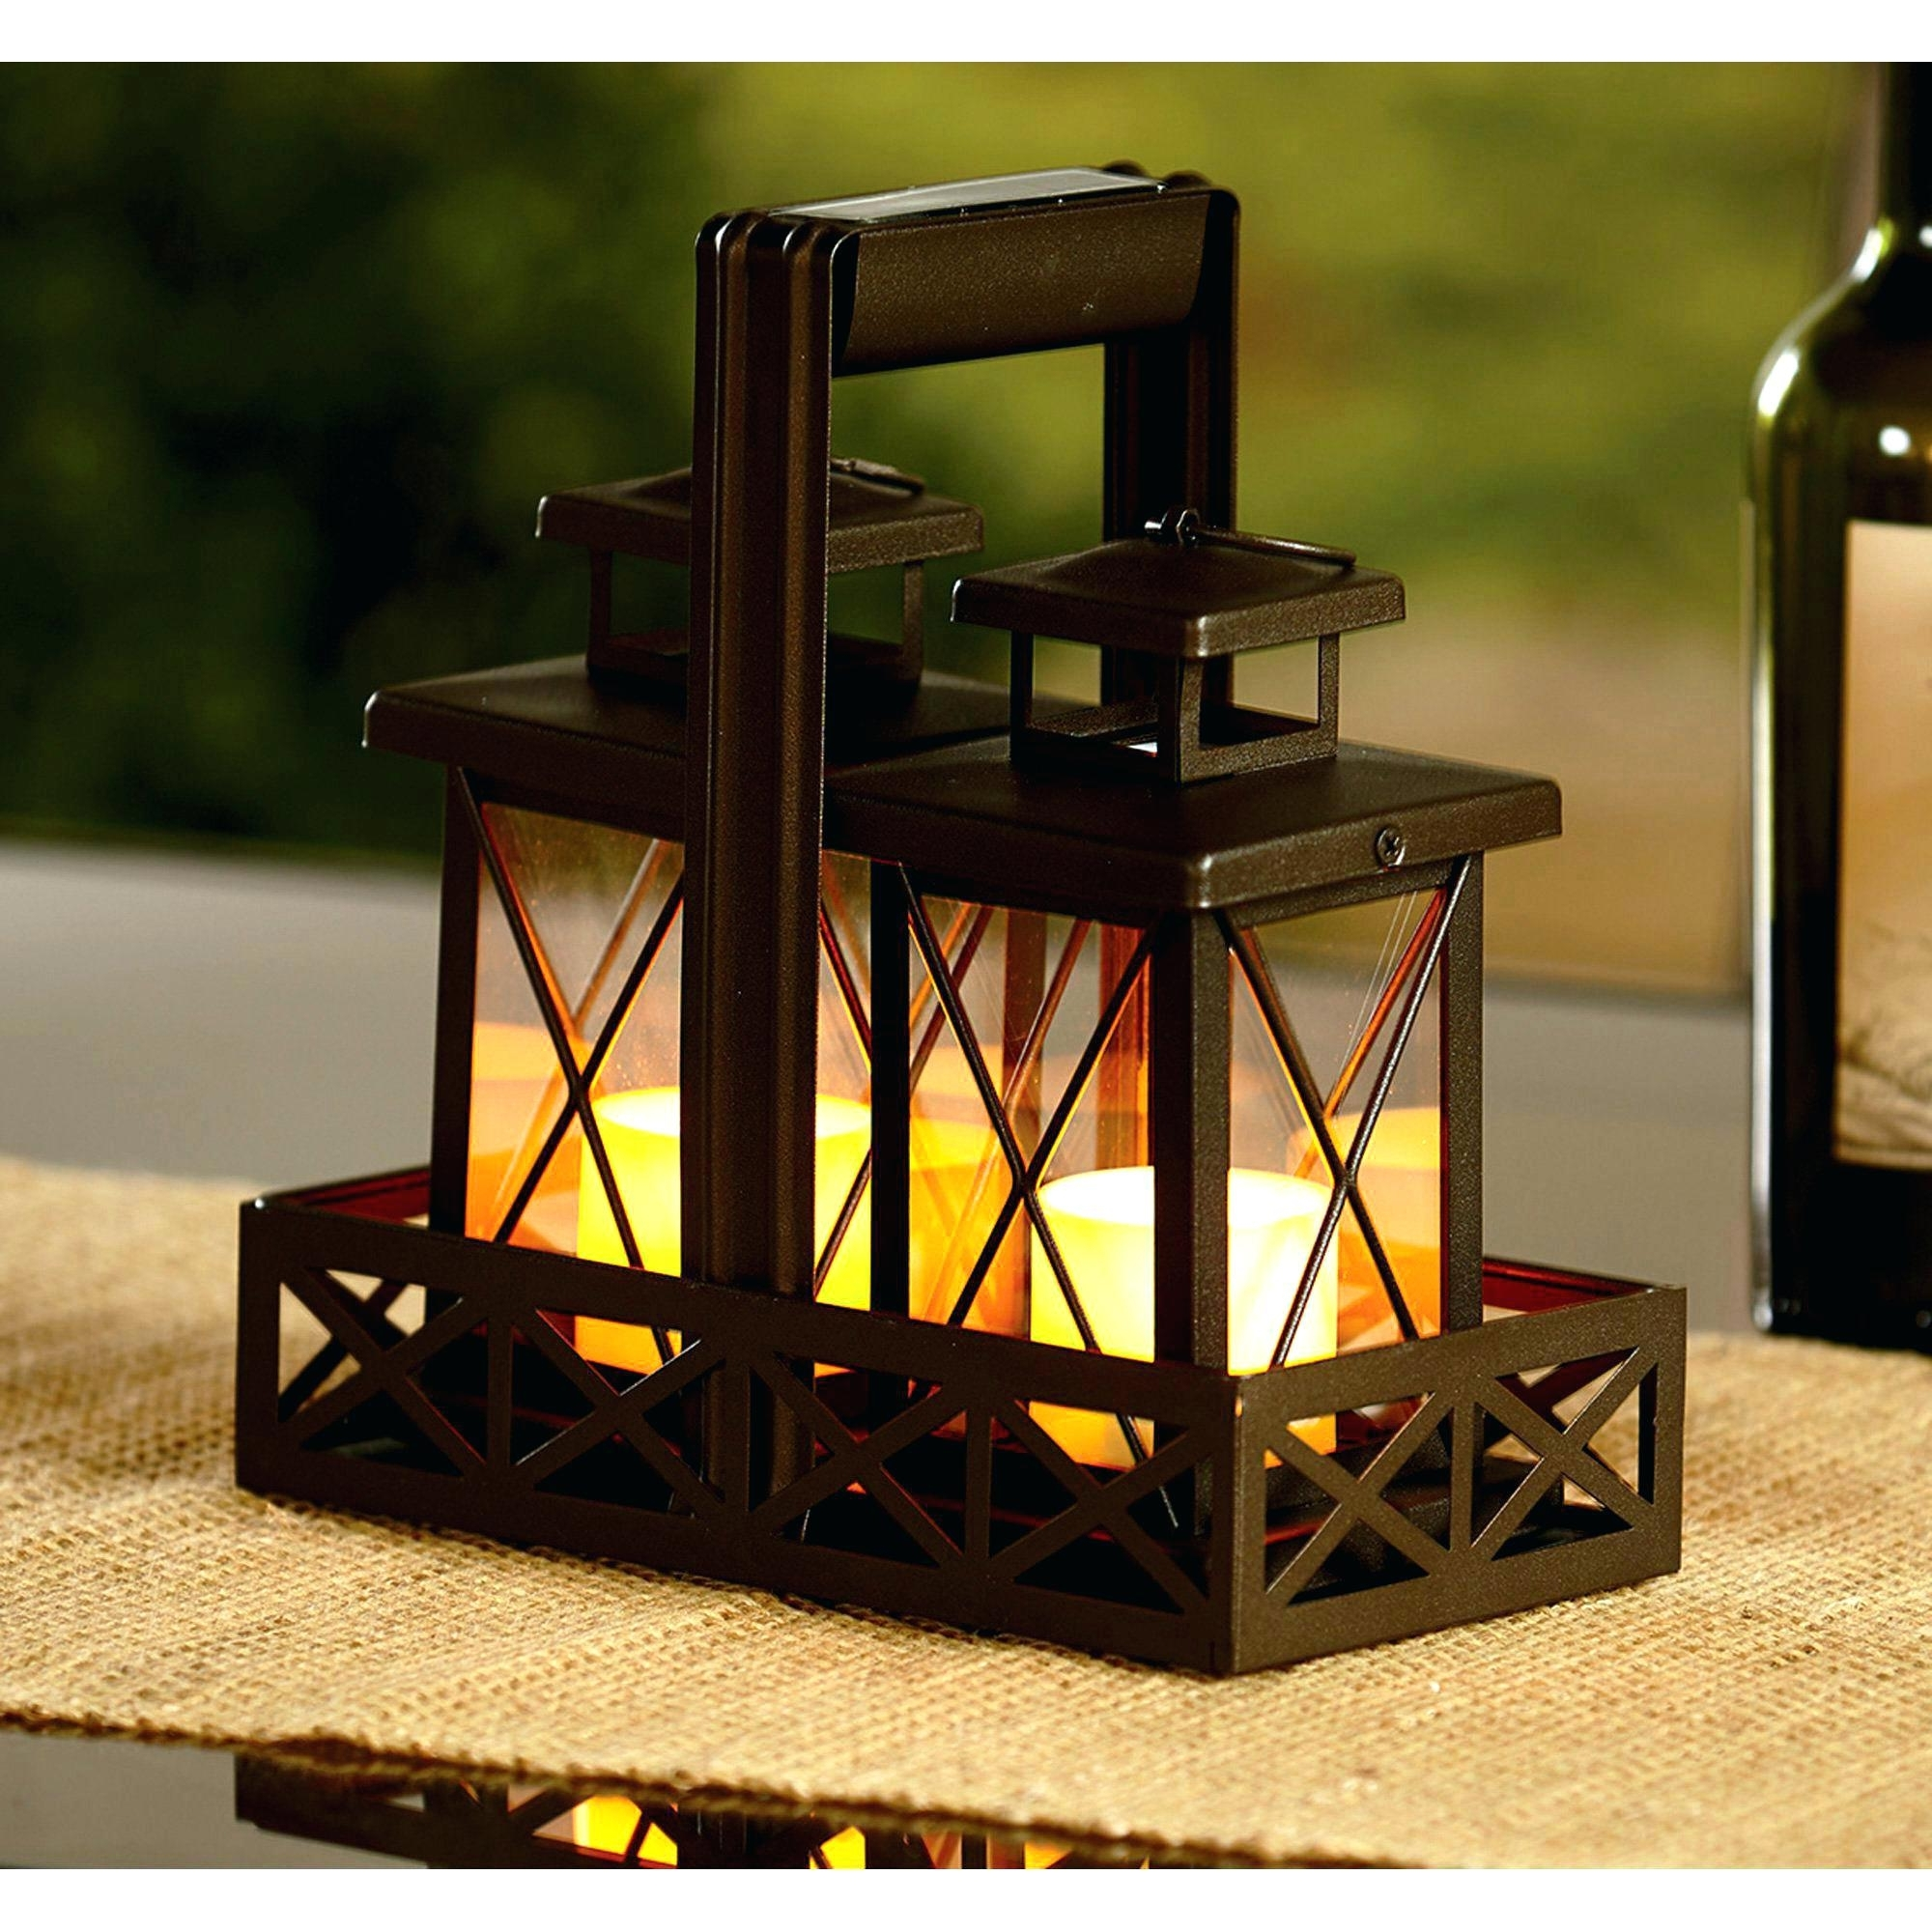 Latest Outdoor Oil Lamps For Patio Table Sale – Pocketworldcupschedule Within Outdoor Oil Lanterns For Patio (View 8 of 20)